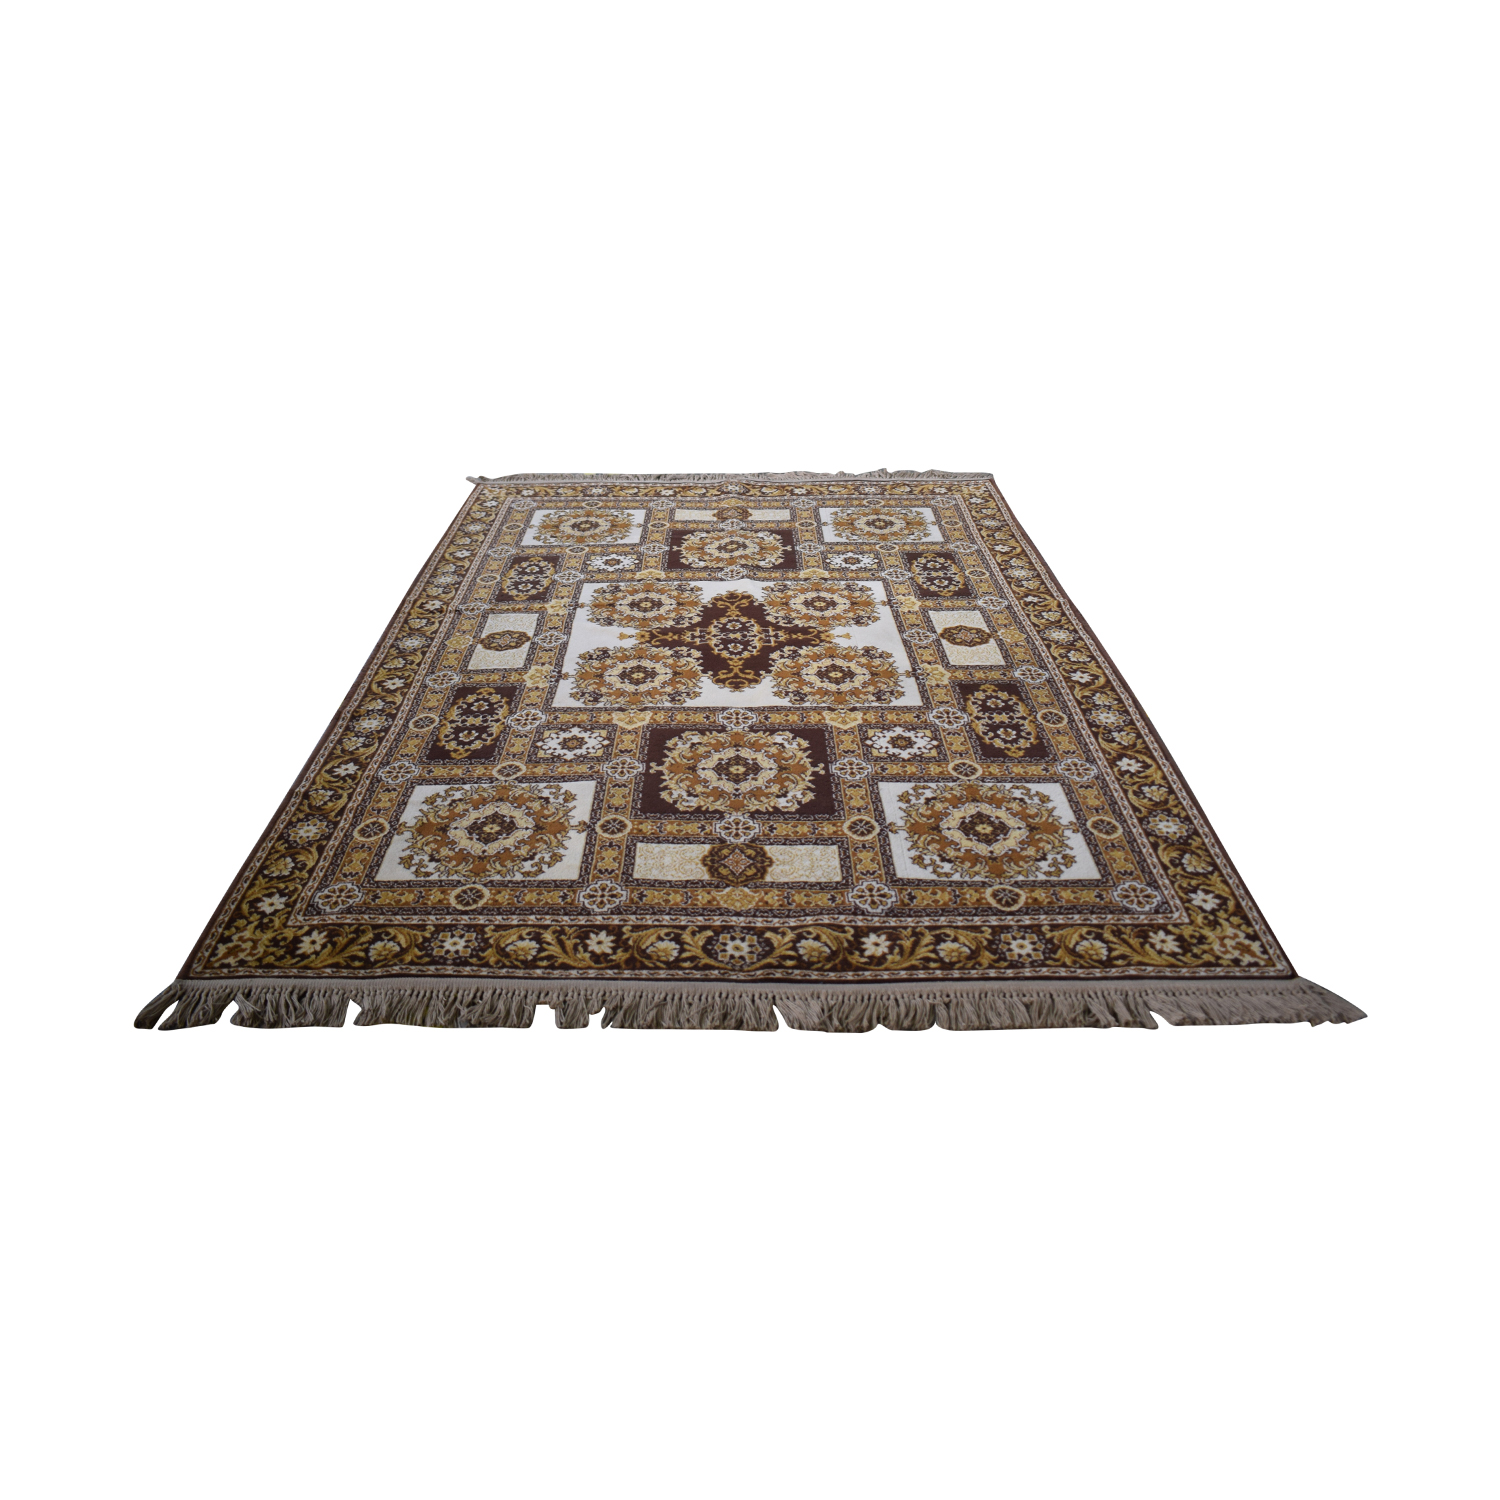 Patterned Wool Rug for sale